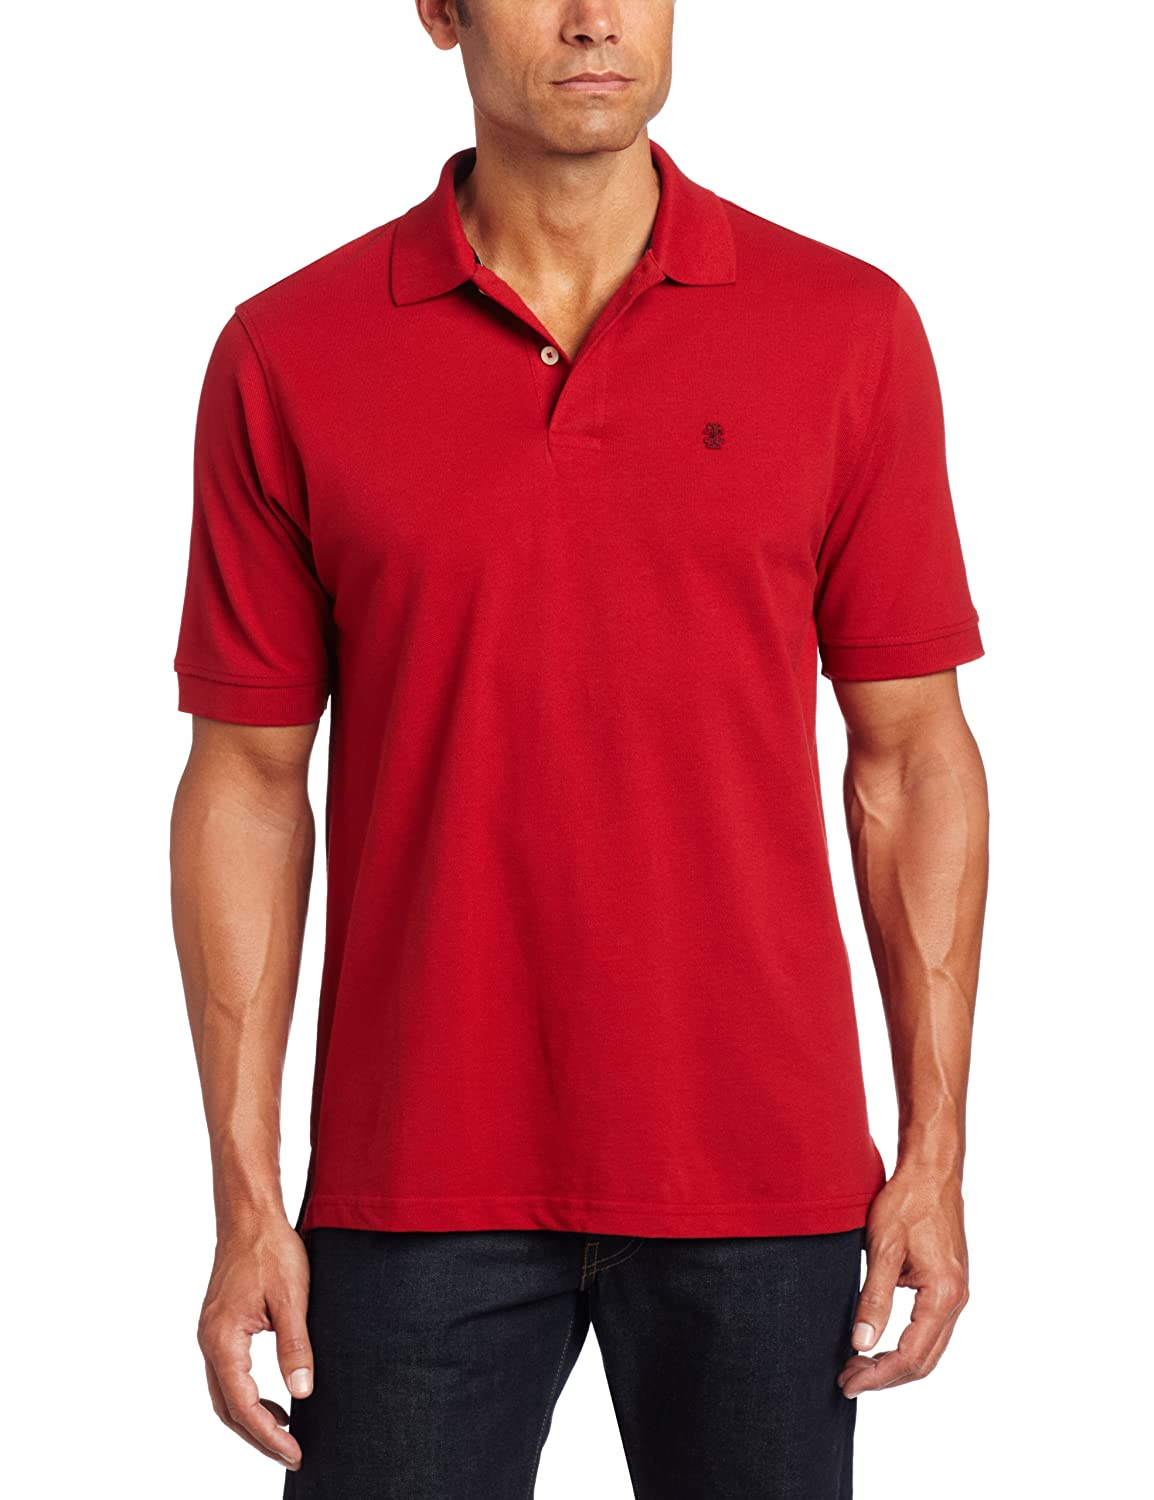 Izod Mens Big-Tall Big and Tall Heritage Short Sleeve Polo IZOD Men' s Sportswear 45X8399